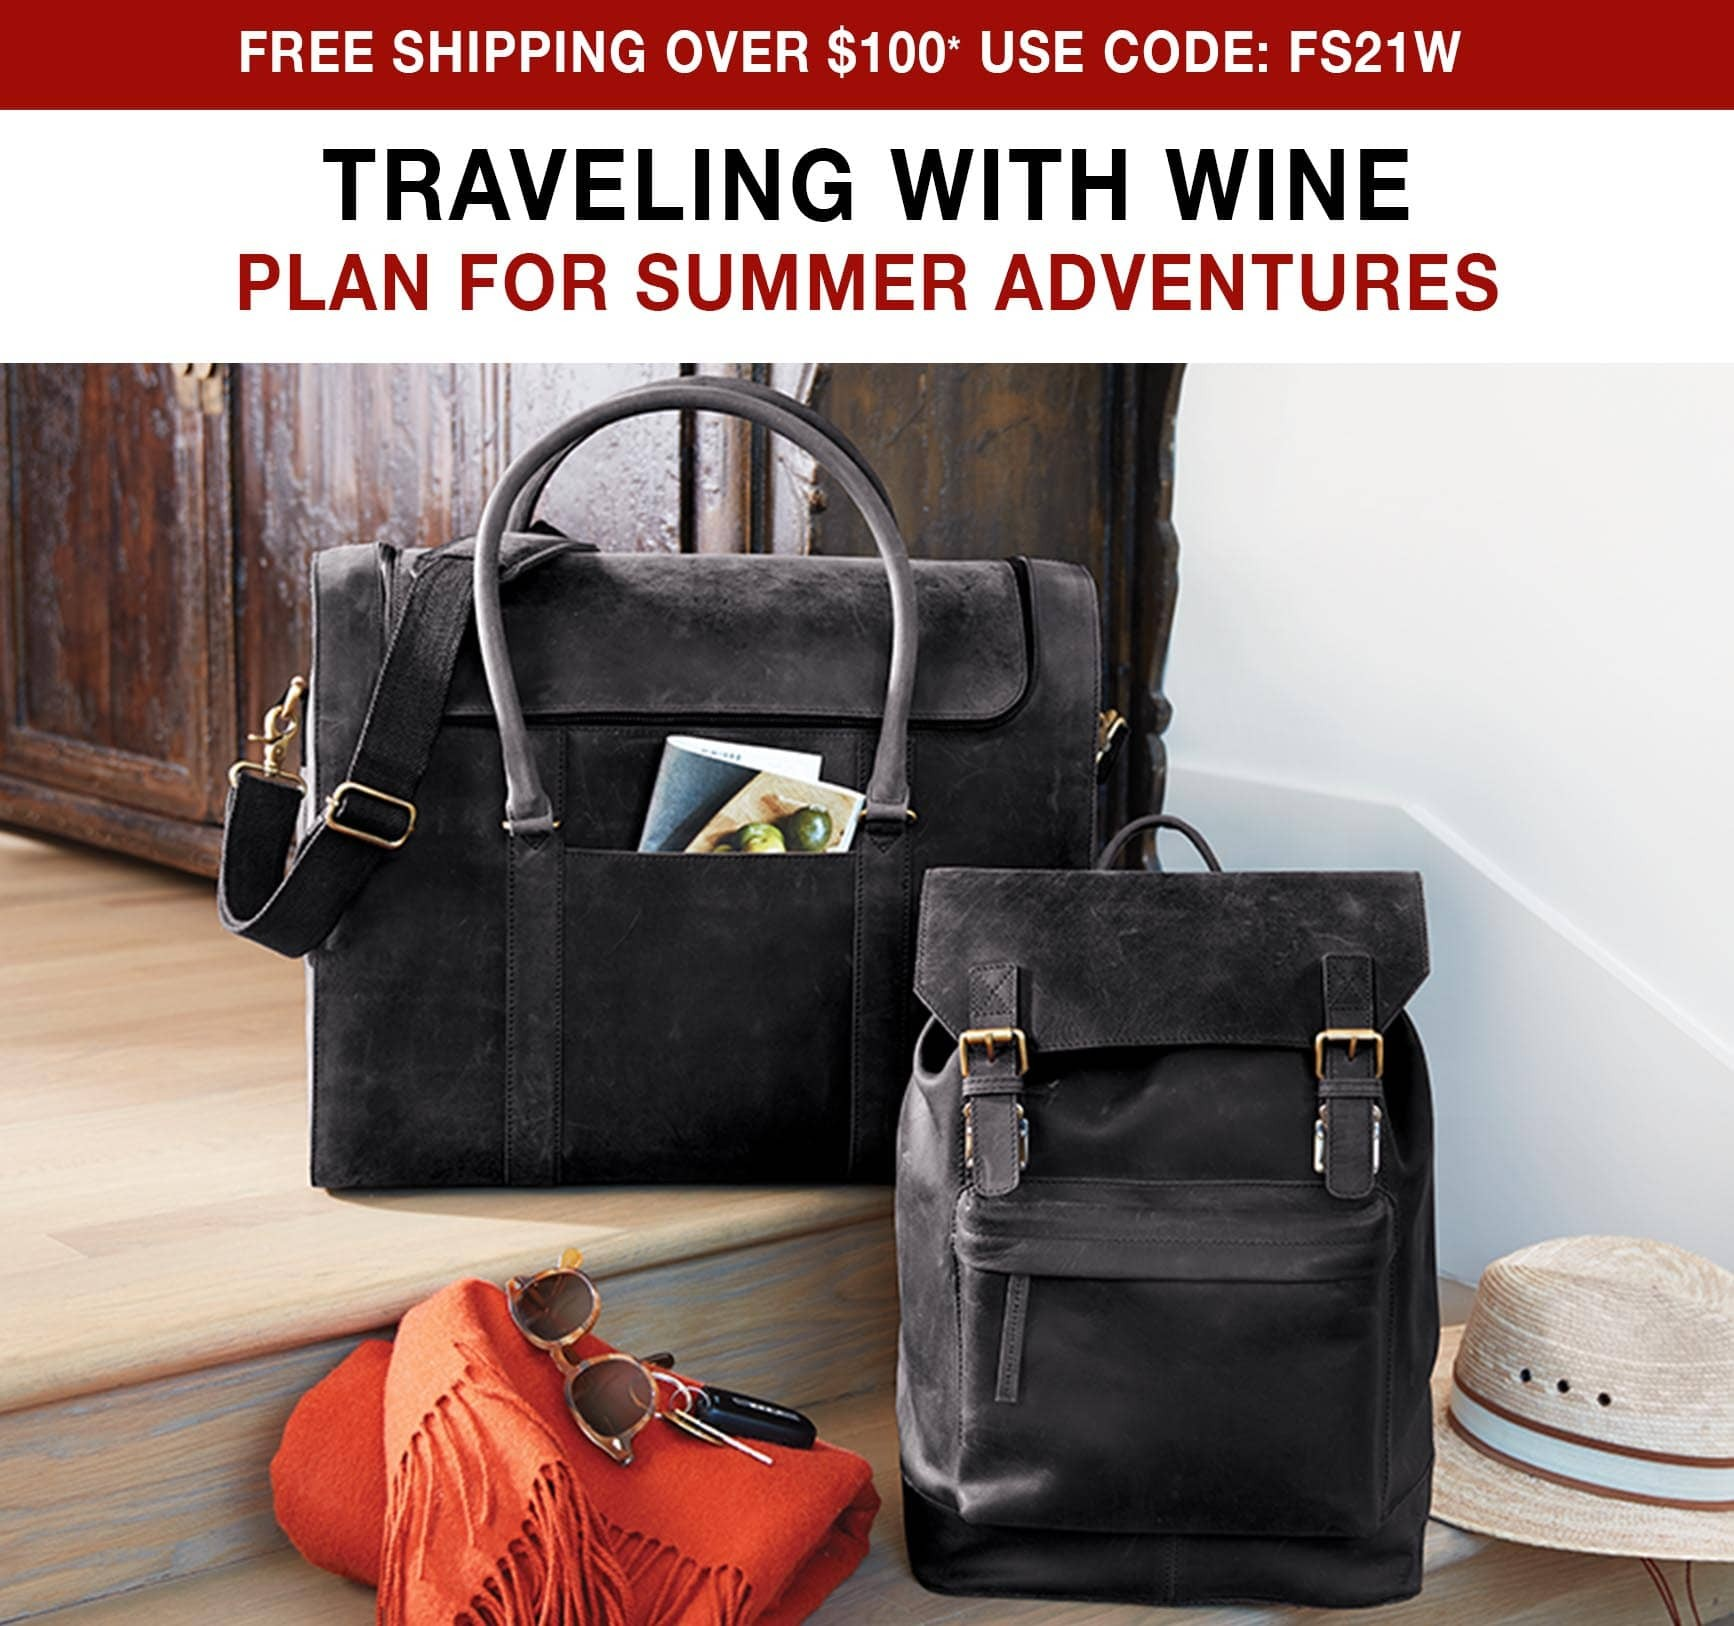 Traveling With Wine: Plan for Summer Adventures - Free ground shipping on orders over $100 use code FS21W